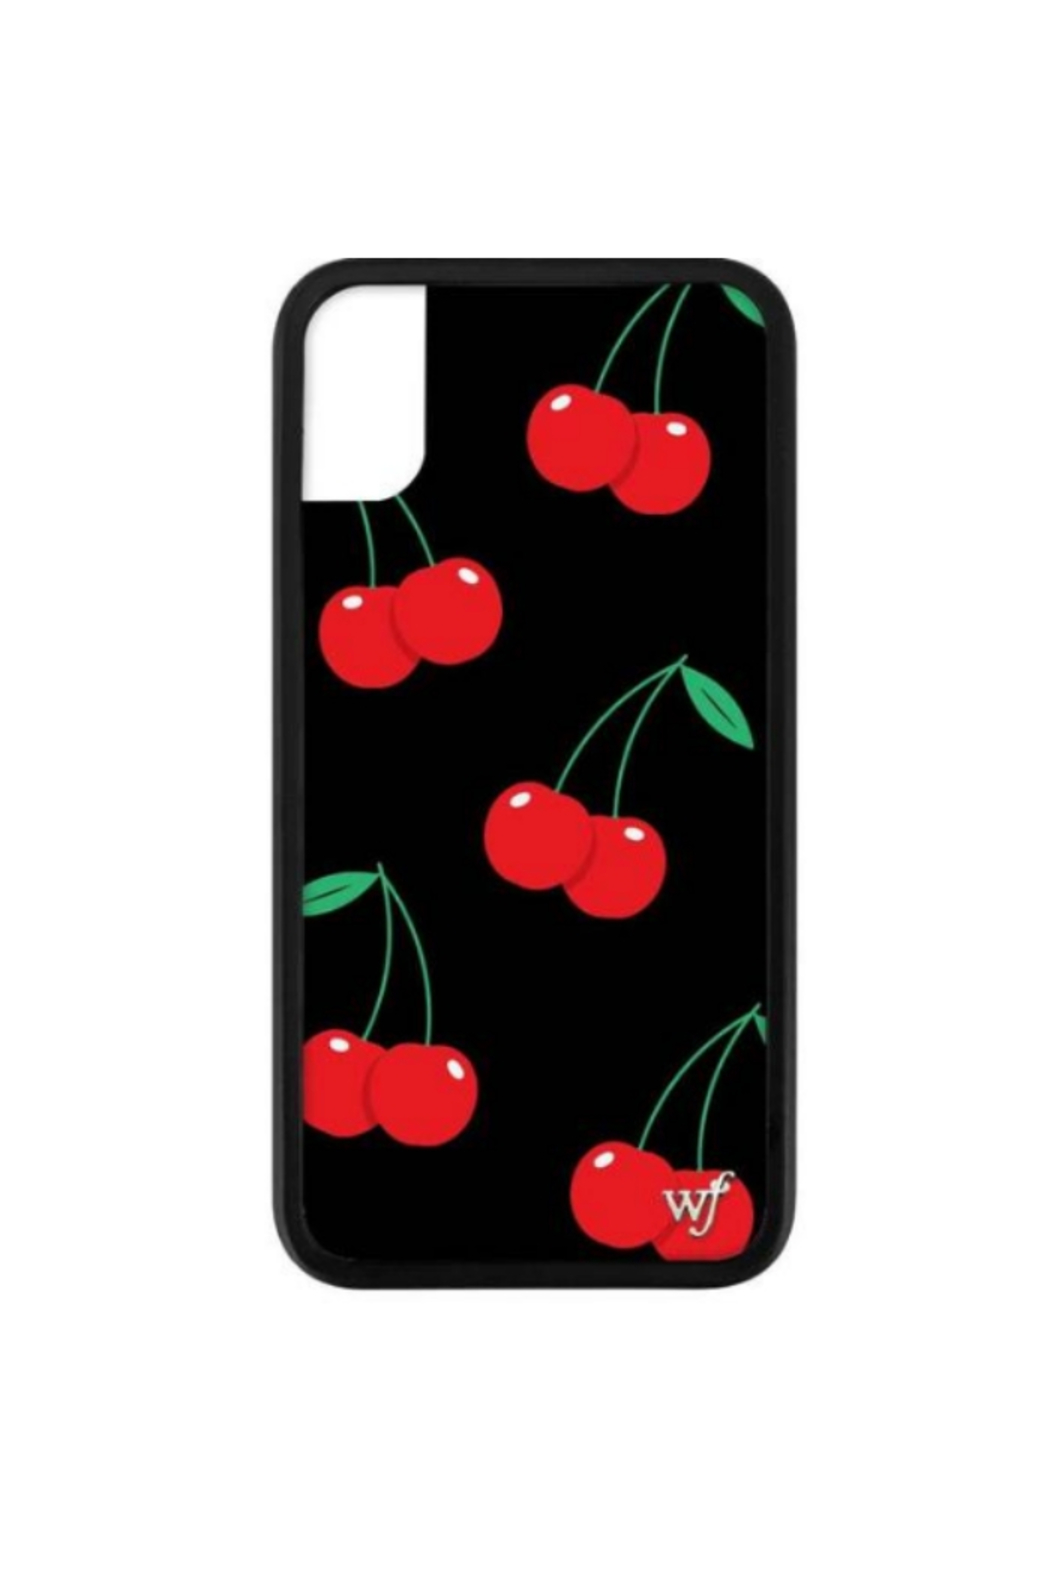 2ab397aa1099 Wildflower Cases Black Cherry iPhone X Case from New York by Let's ...